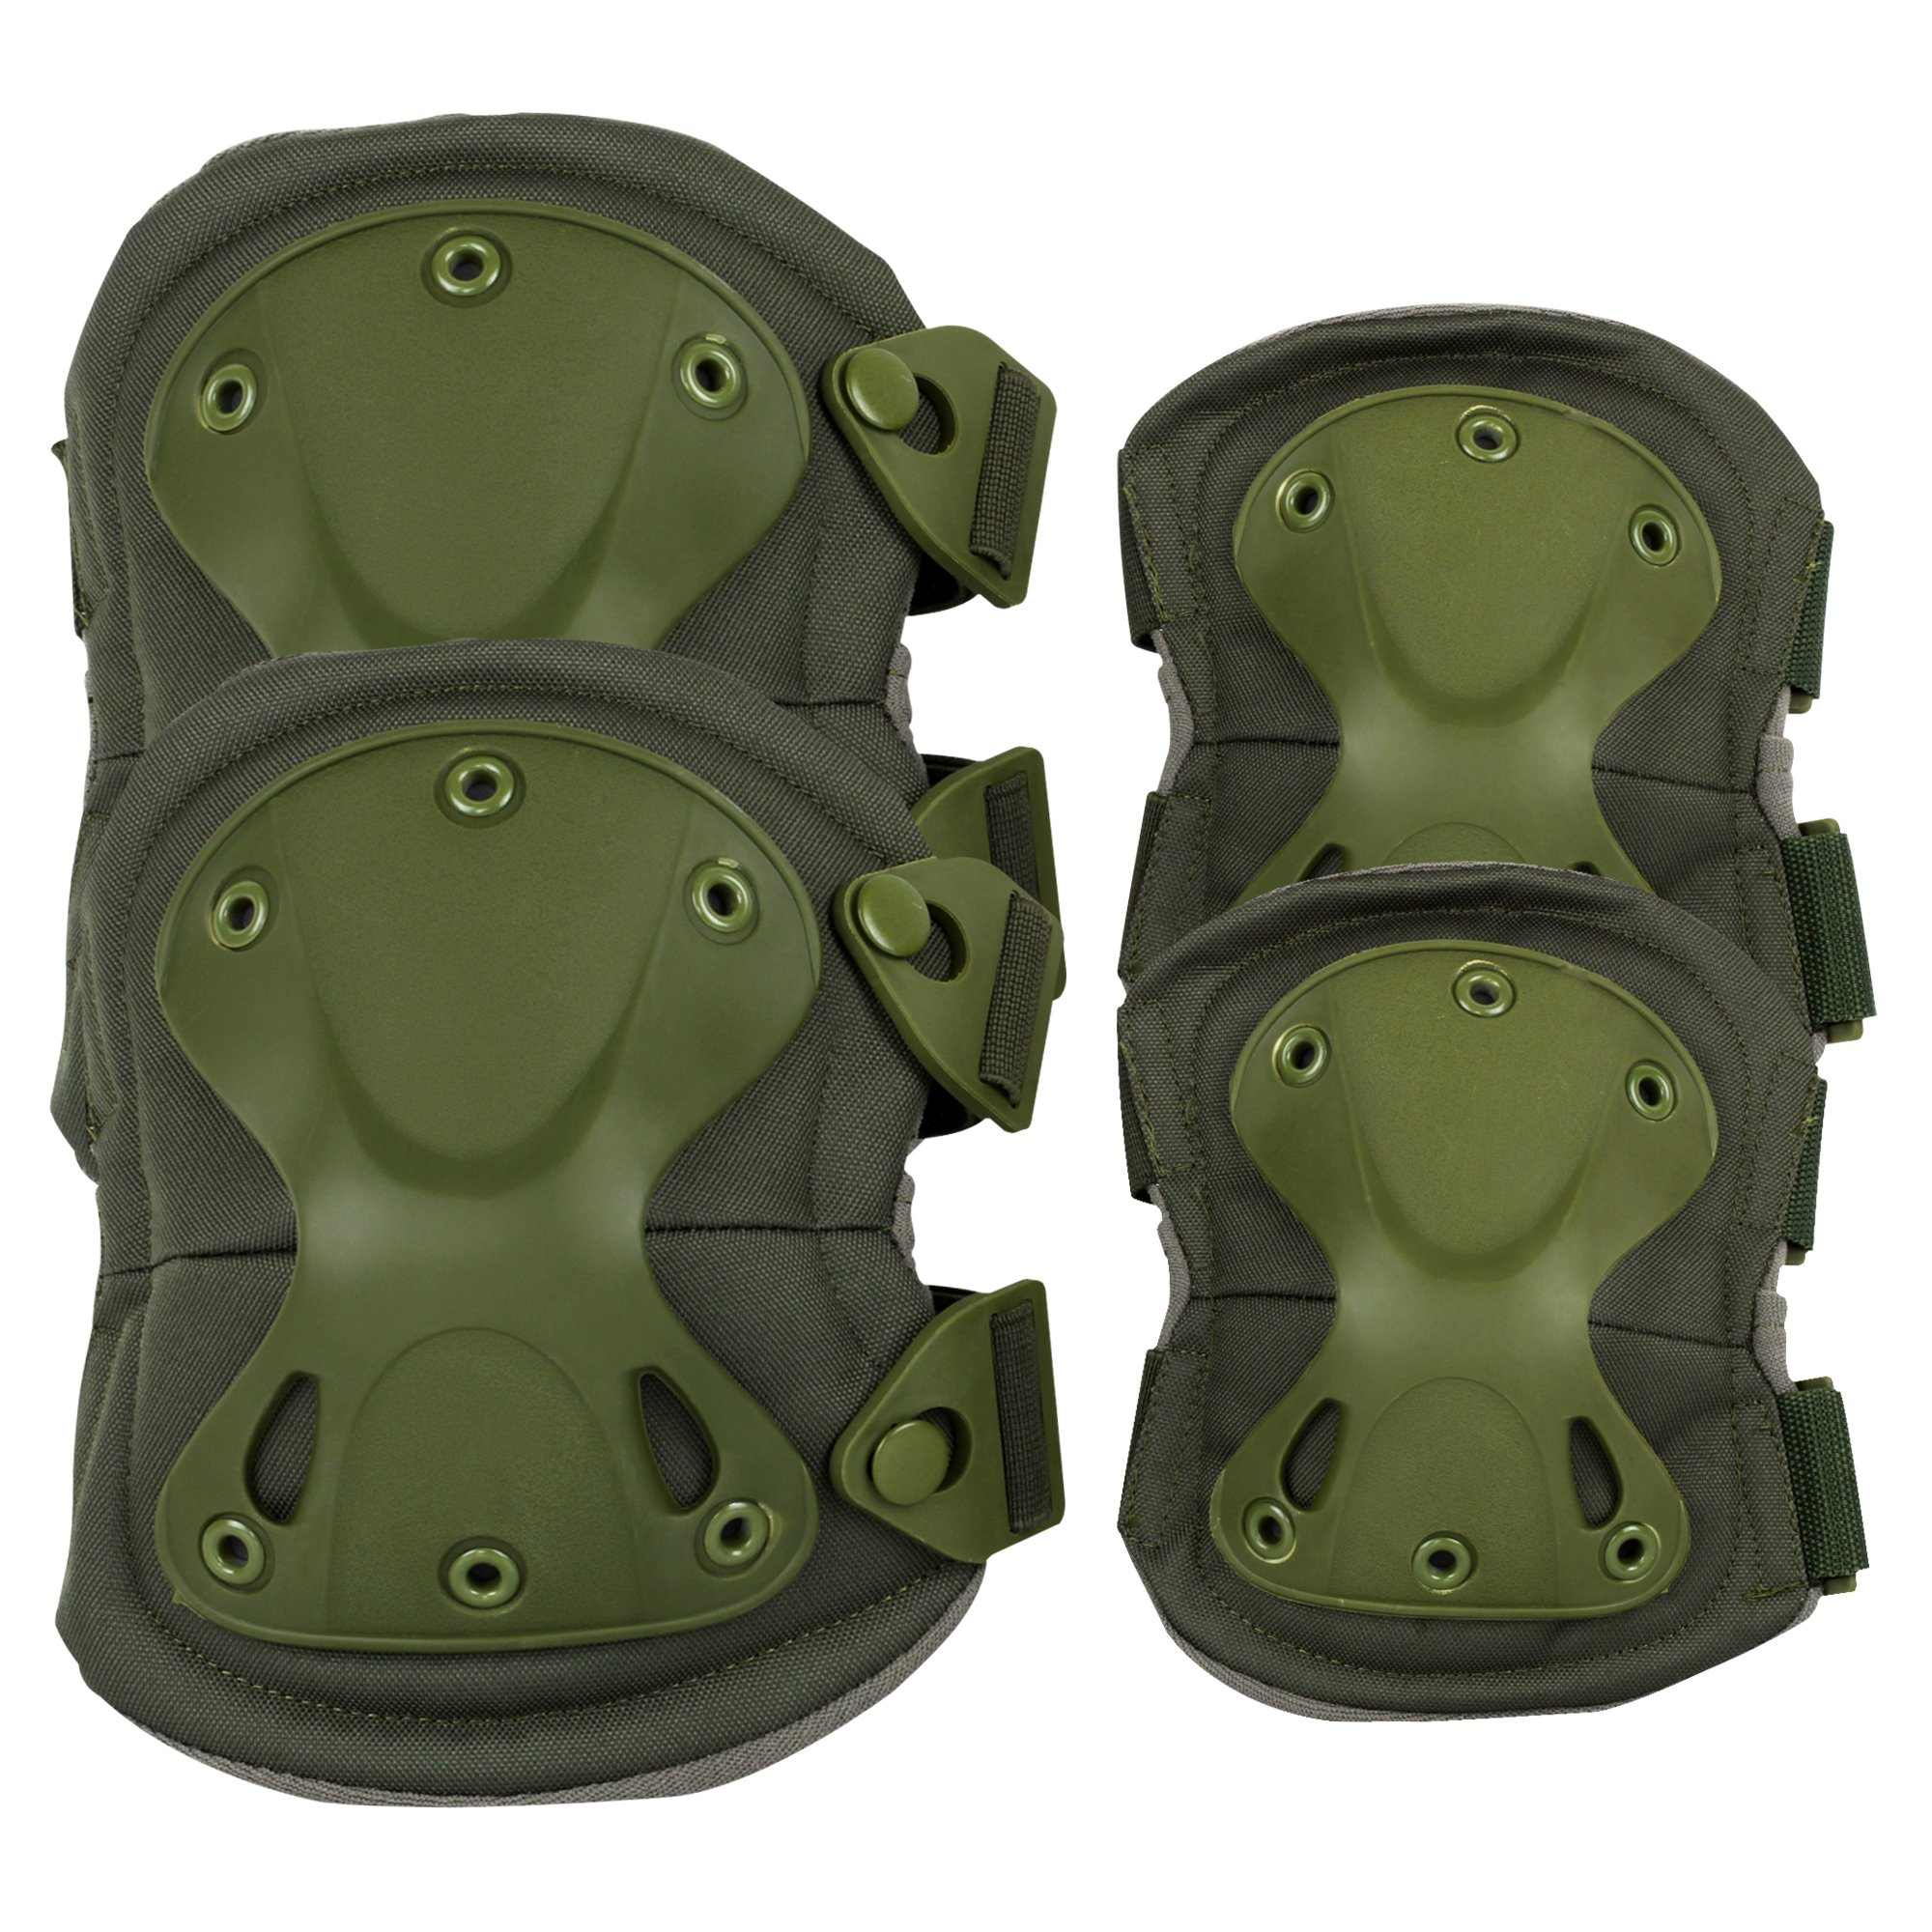 Knee & Elbow Pads , ADiPROD (4 pcs) Adjustable Tactical Airsoft Combat Sports-Protective Skate Knee Pads (Green) by ADiPROD